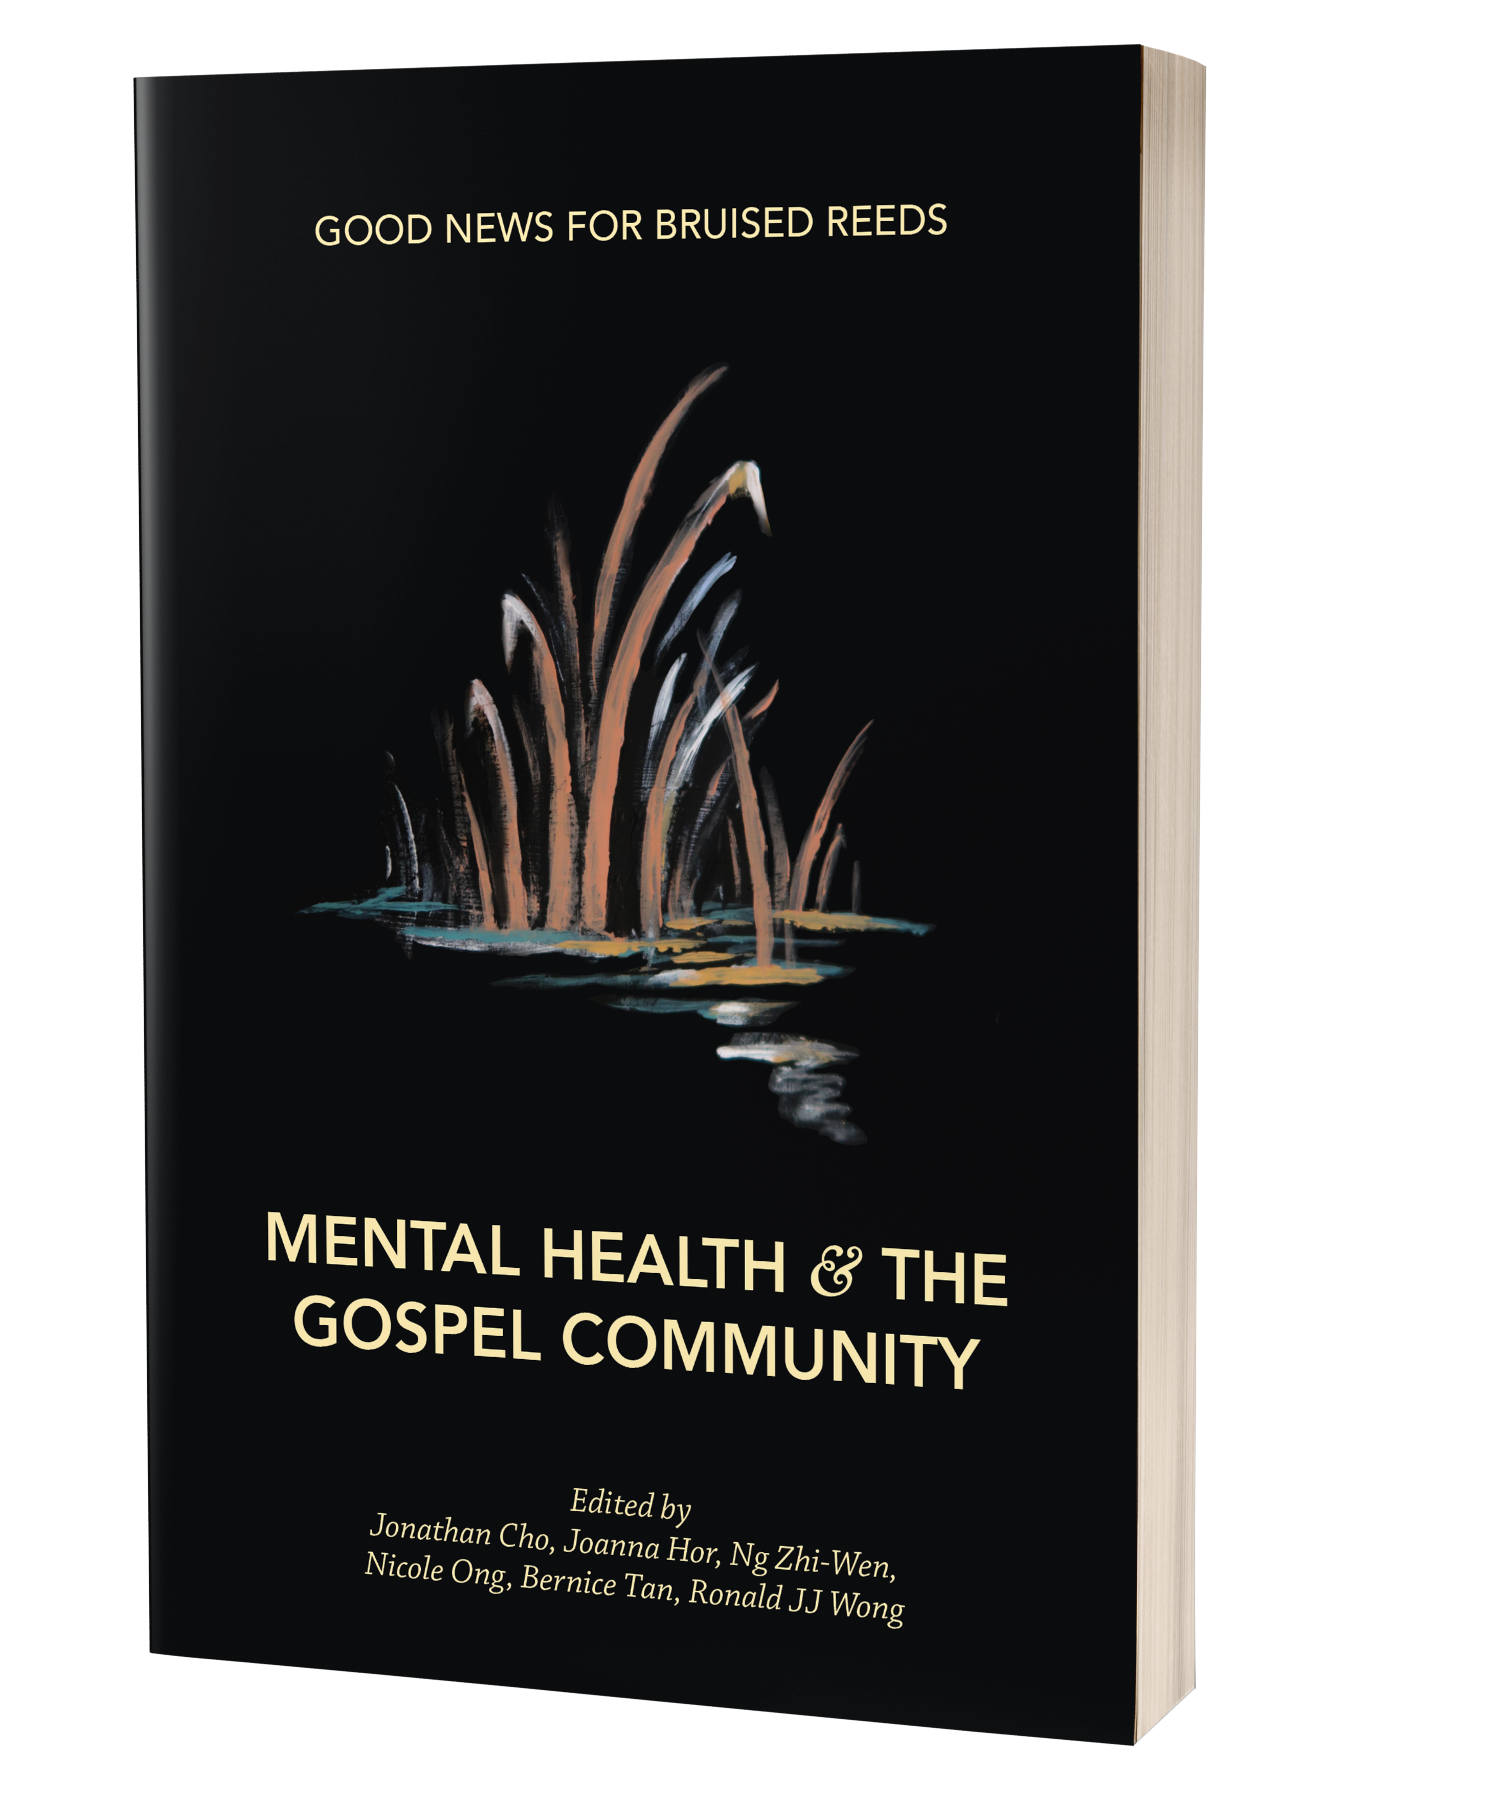 Good News for Bruised Reeds Vol II: MENTAL HEALTH & THE GOSPEL COMMUNITY